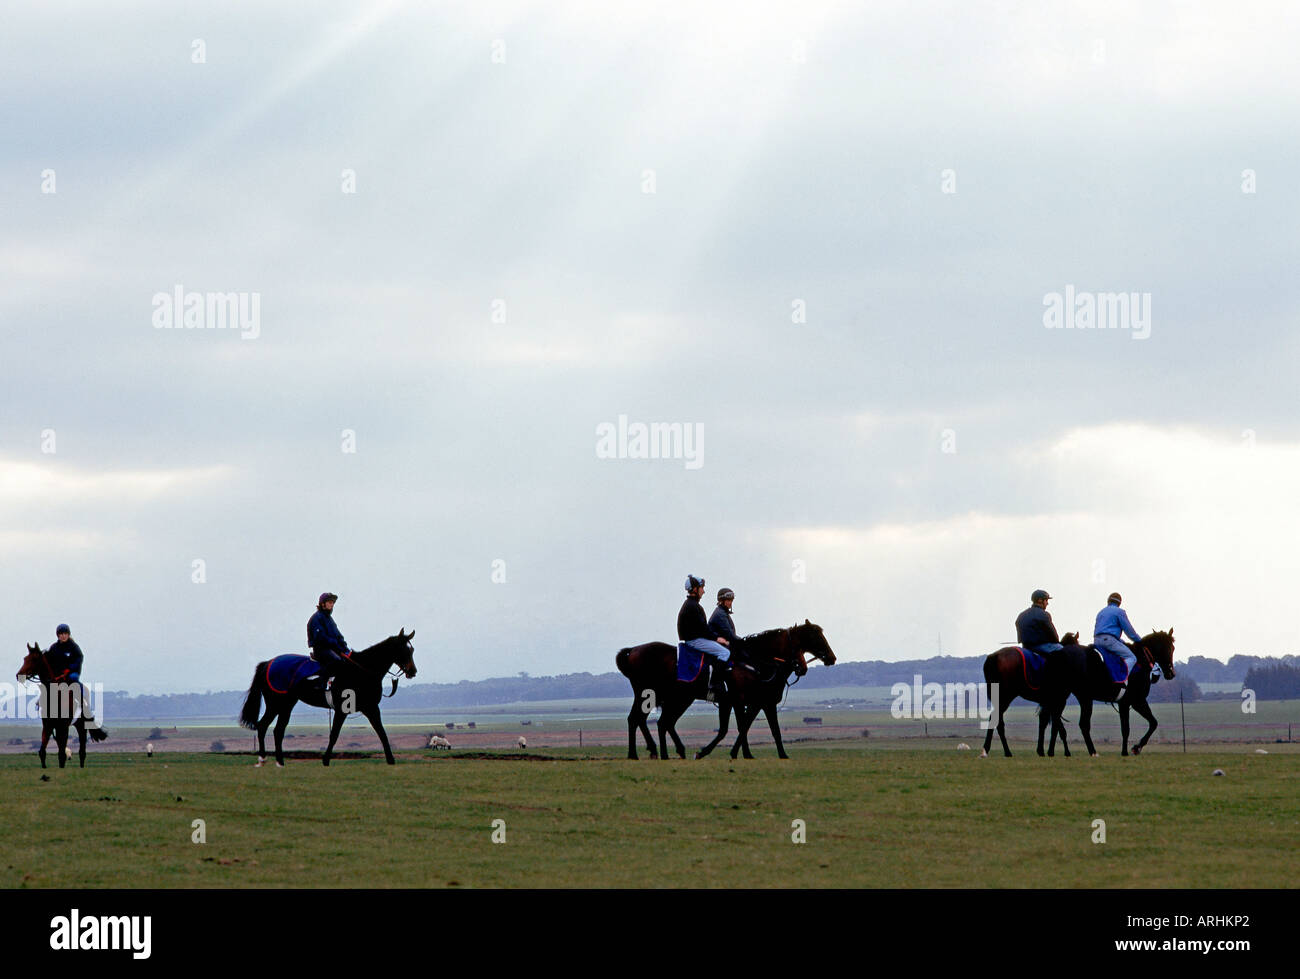 Horses exercise at the curragh ireland s flat racing venue horses exercise at the curragh ireland s flat racing venue situated in county kildare s countryside publicscrutiny Images